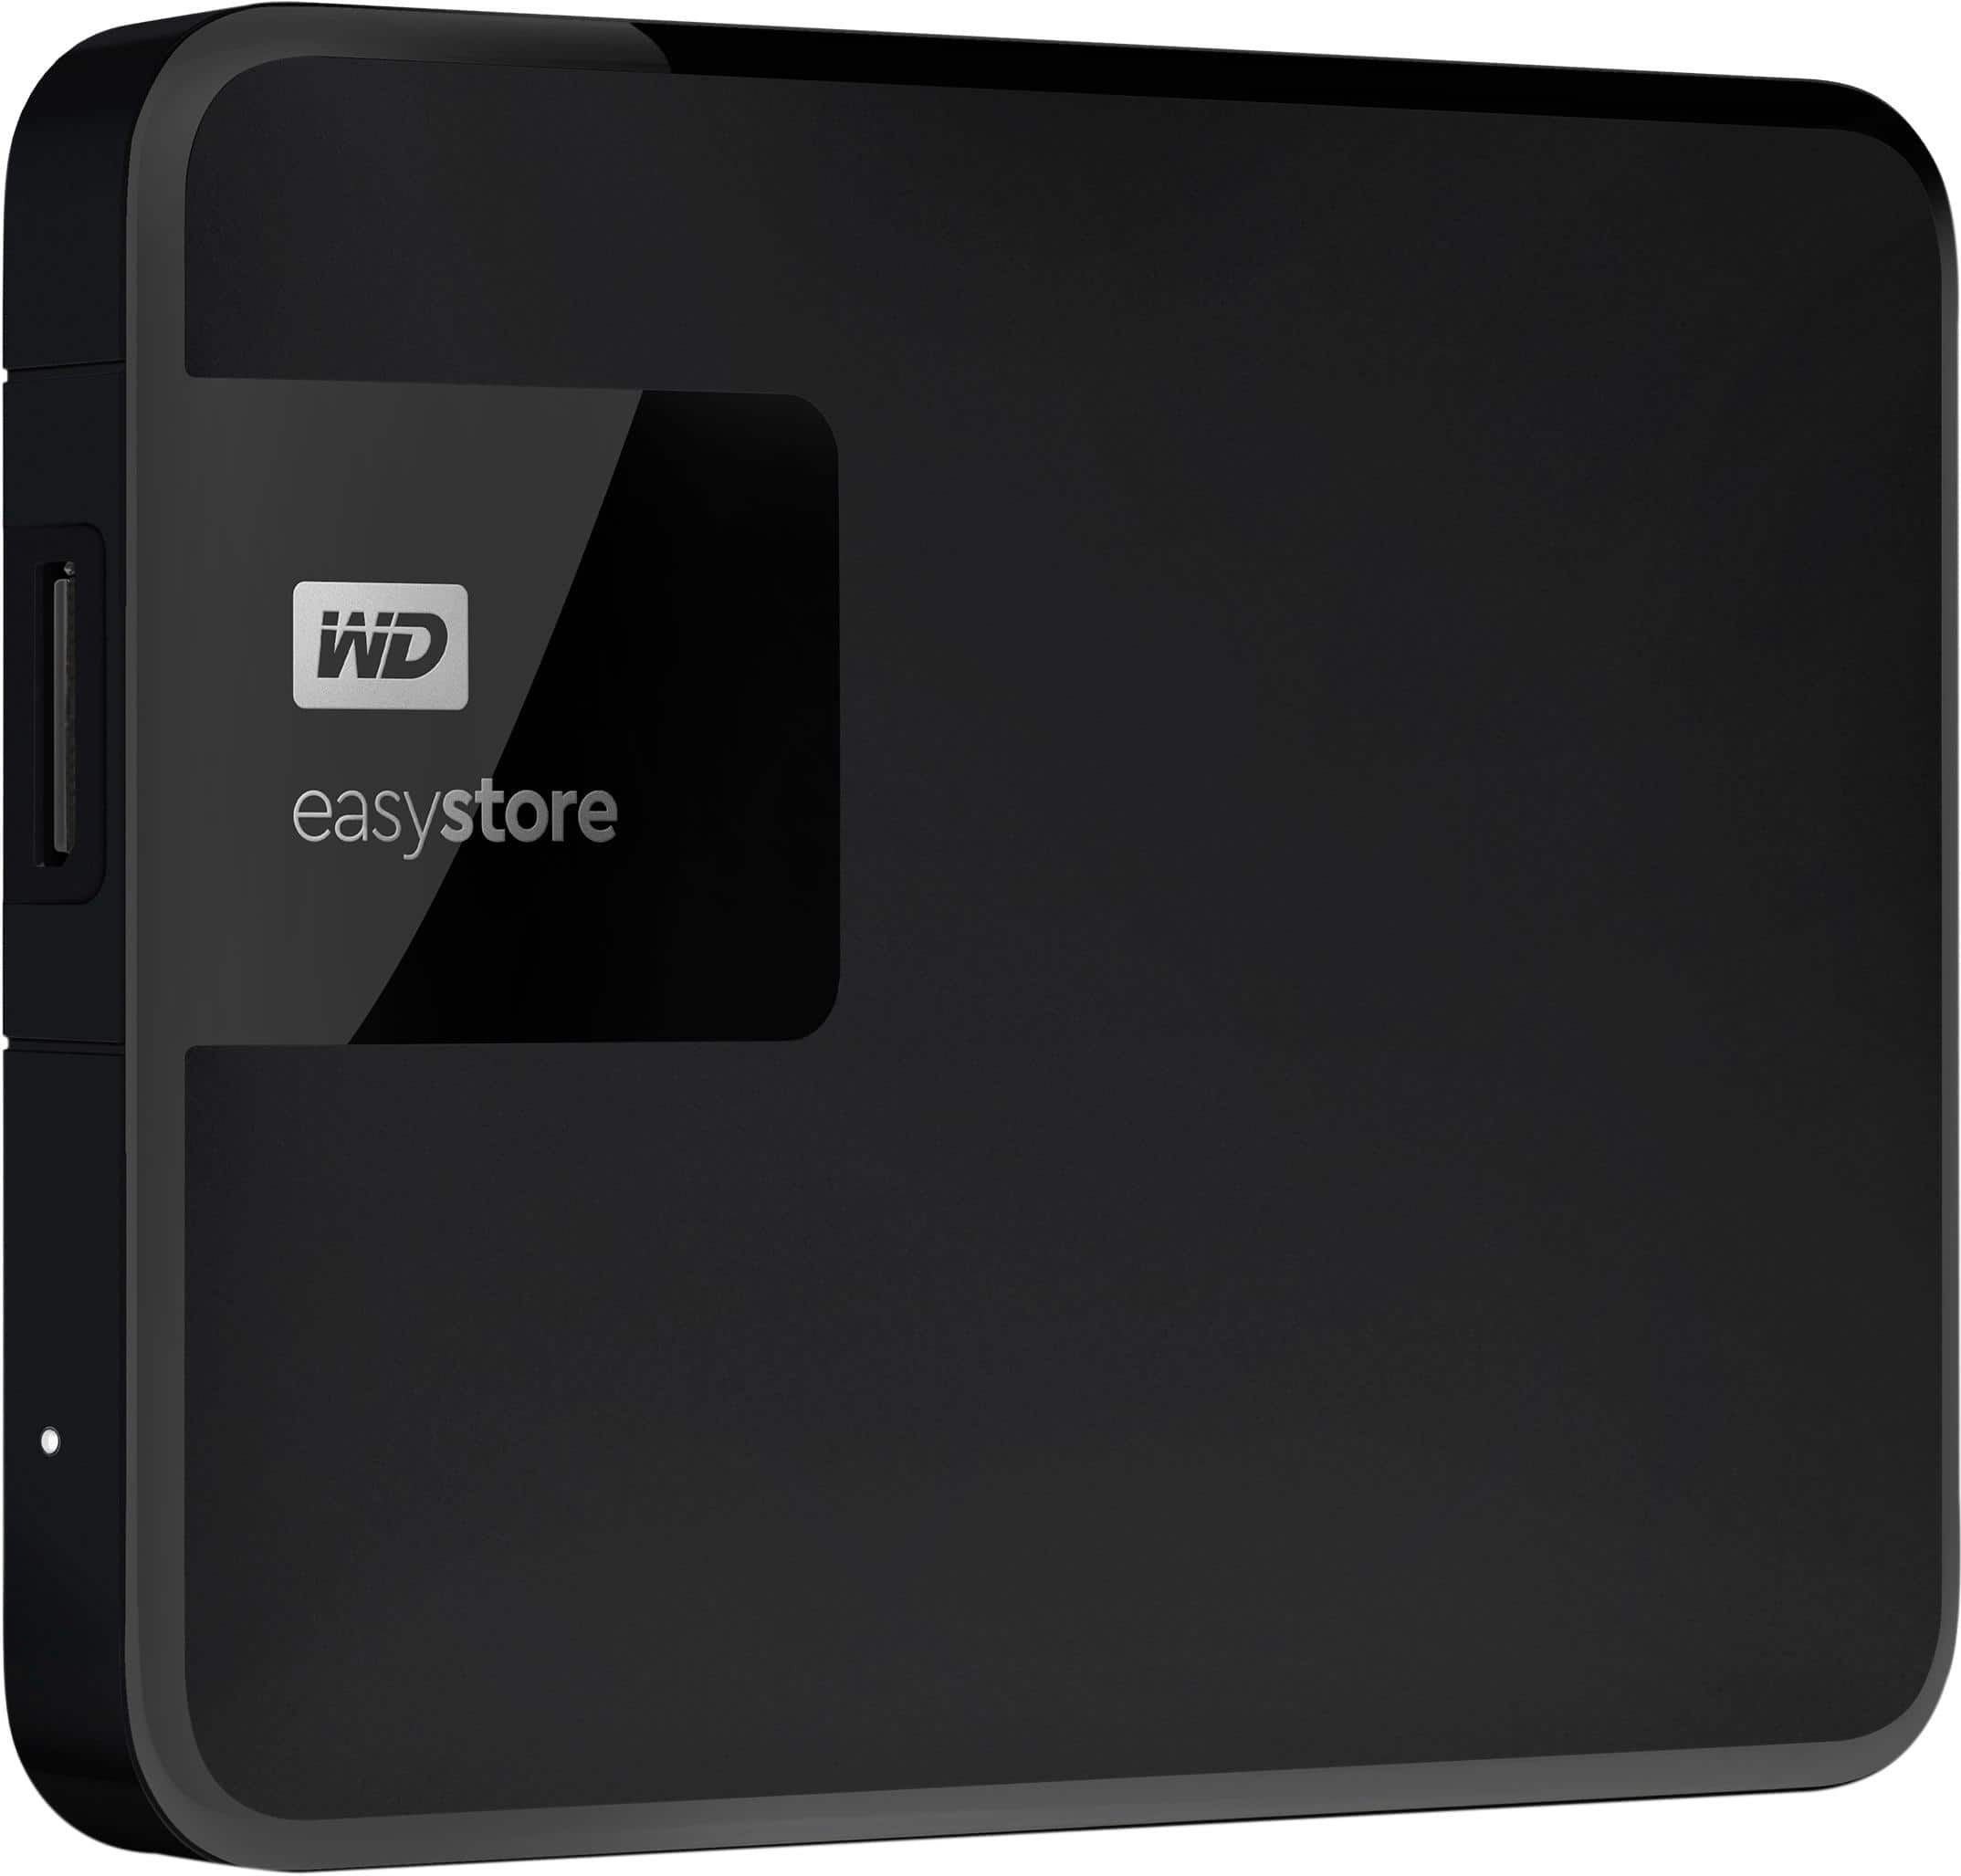 WD - easystore® 2TB External USB 3.0 Portable Hard Drive - Black - $59.99